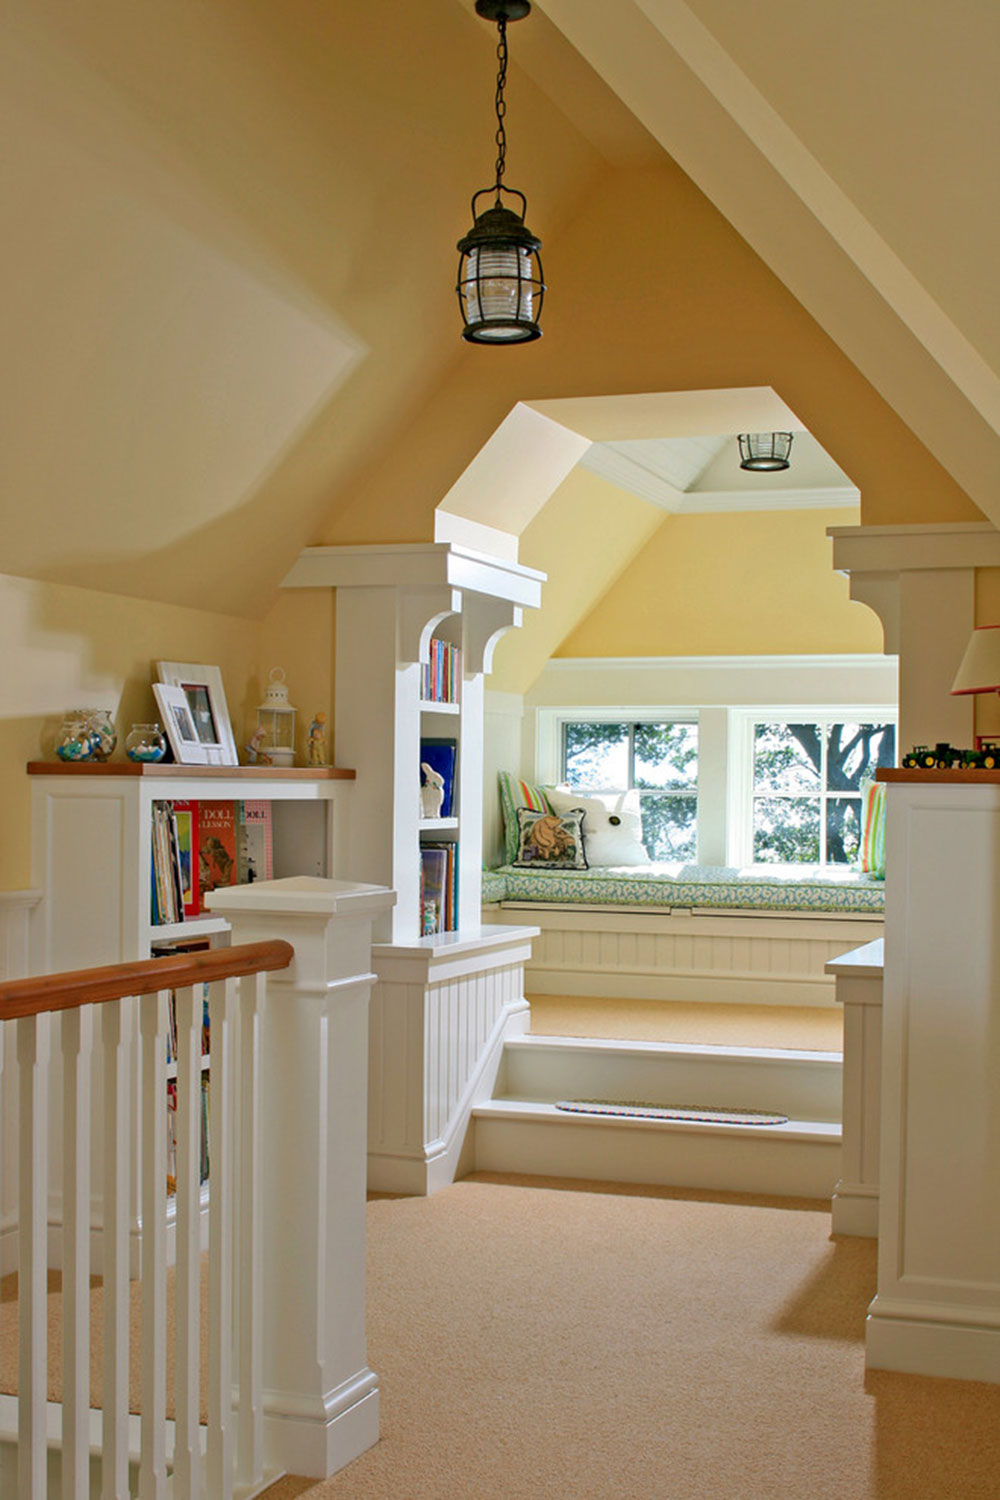 Interesting Tips for Creating a Welcoming Home6 Interesting Tips for Creating a Welcoming Home